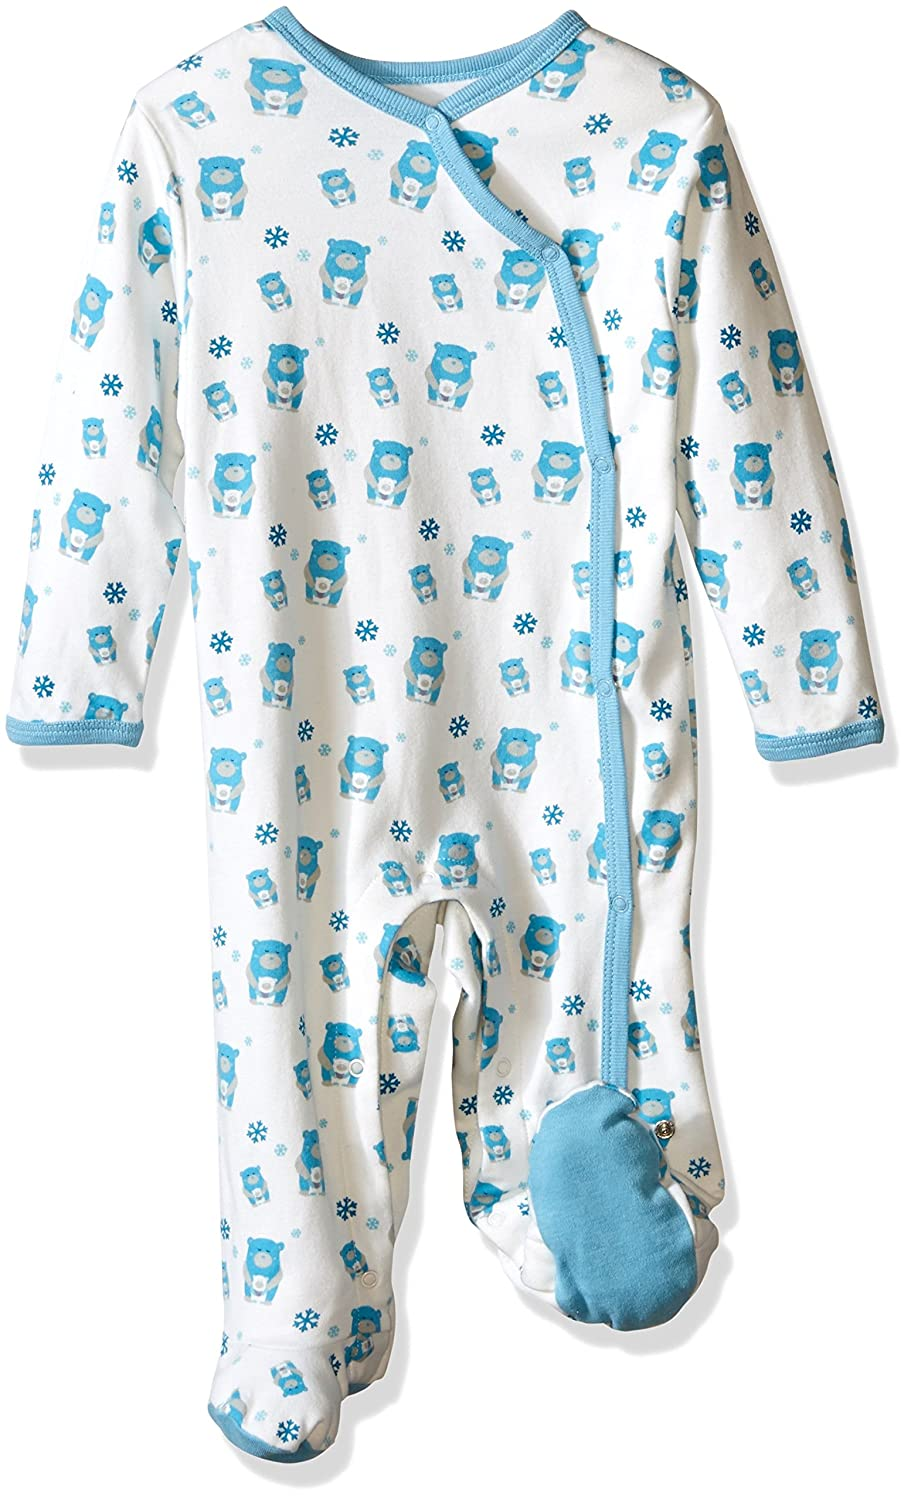 Babysoy Baby Organic Cotton Pattern Footie Pajamas 300